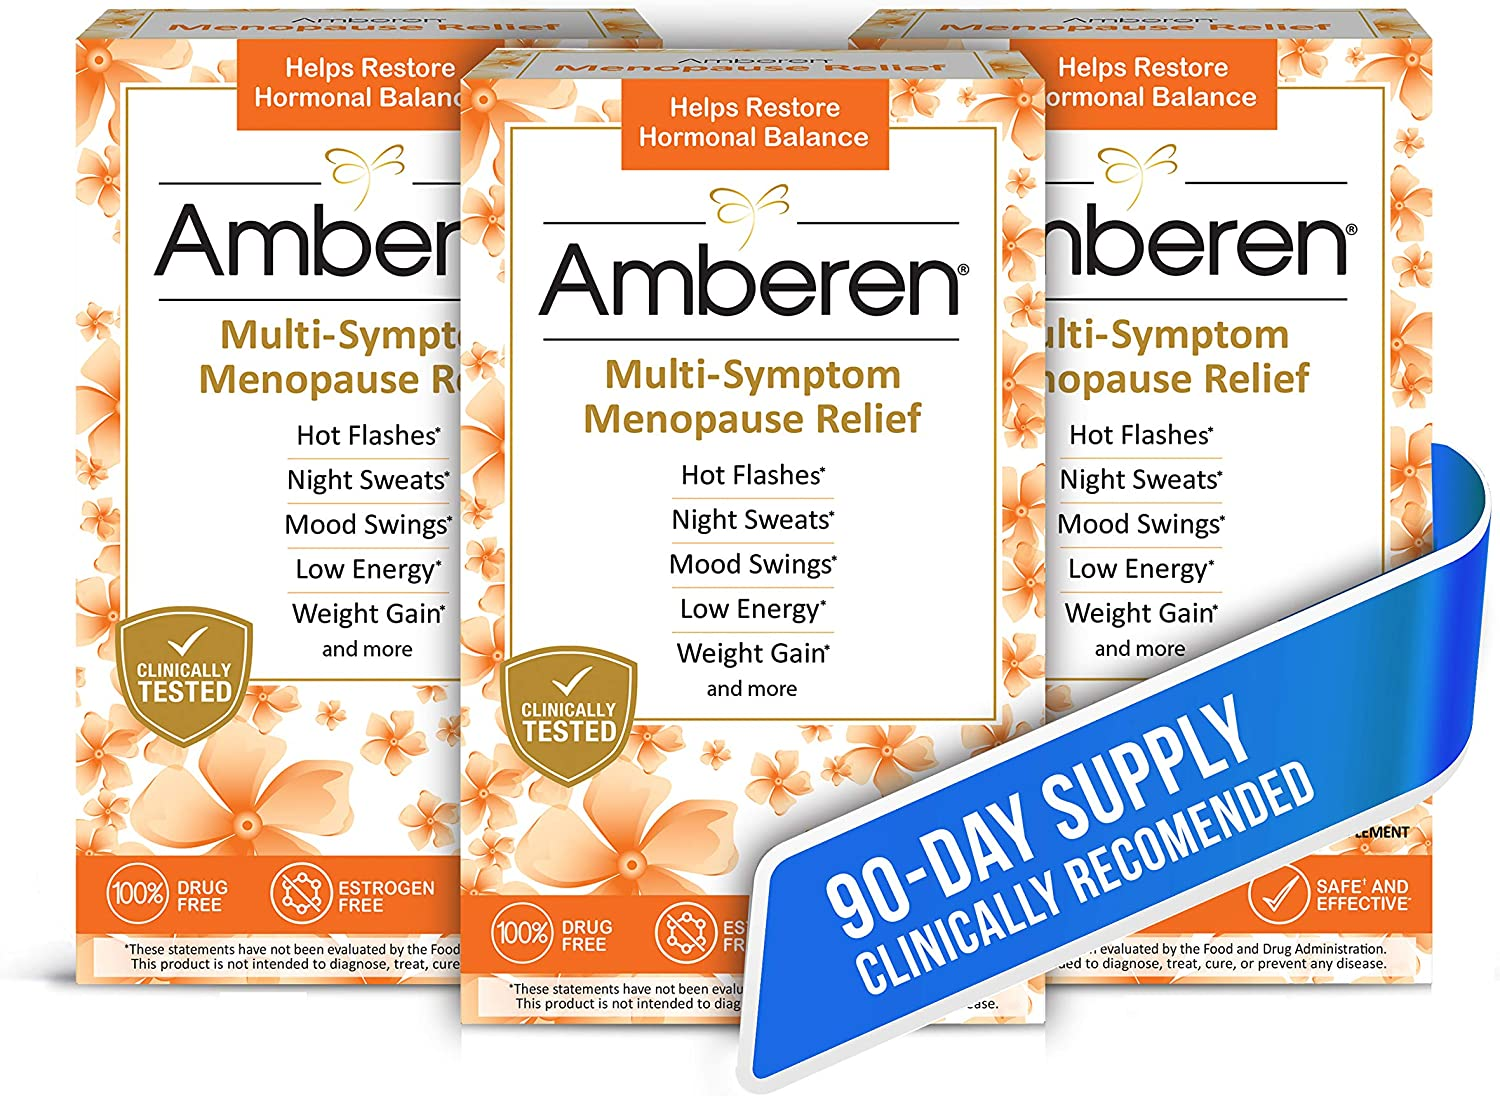 Amazon.com: Amberen: Safe Multi-Symptom Menopause Relief. Clinically Shown  to Relieve 12 Menopause Symptoms: Hot Flashes, Night Sweats, Mood Swings,  Low Energy and More. 3 Month Supply: Health & Personal Care